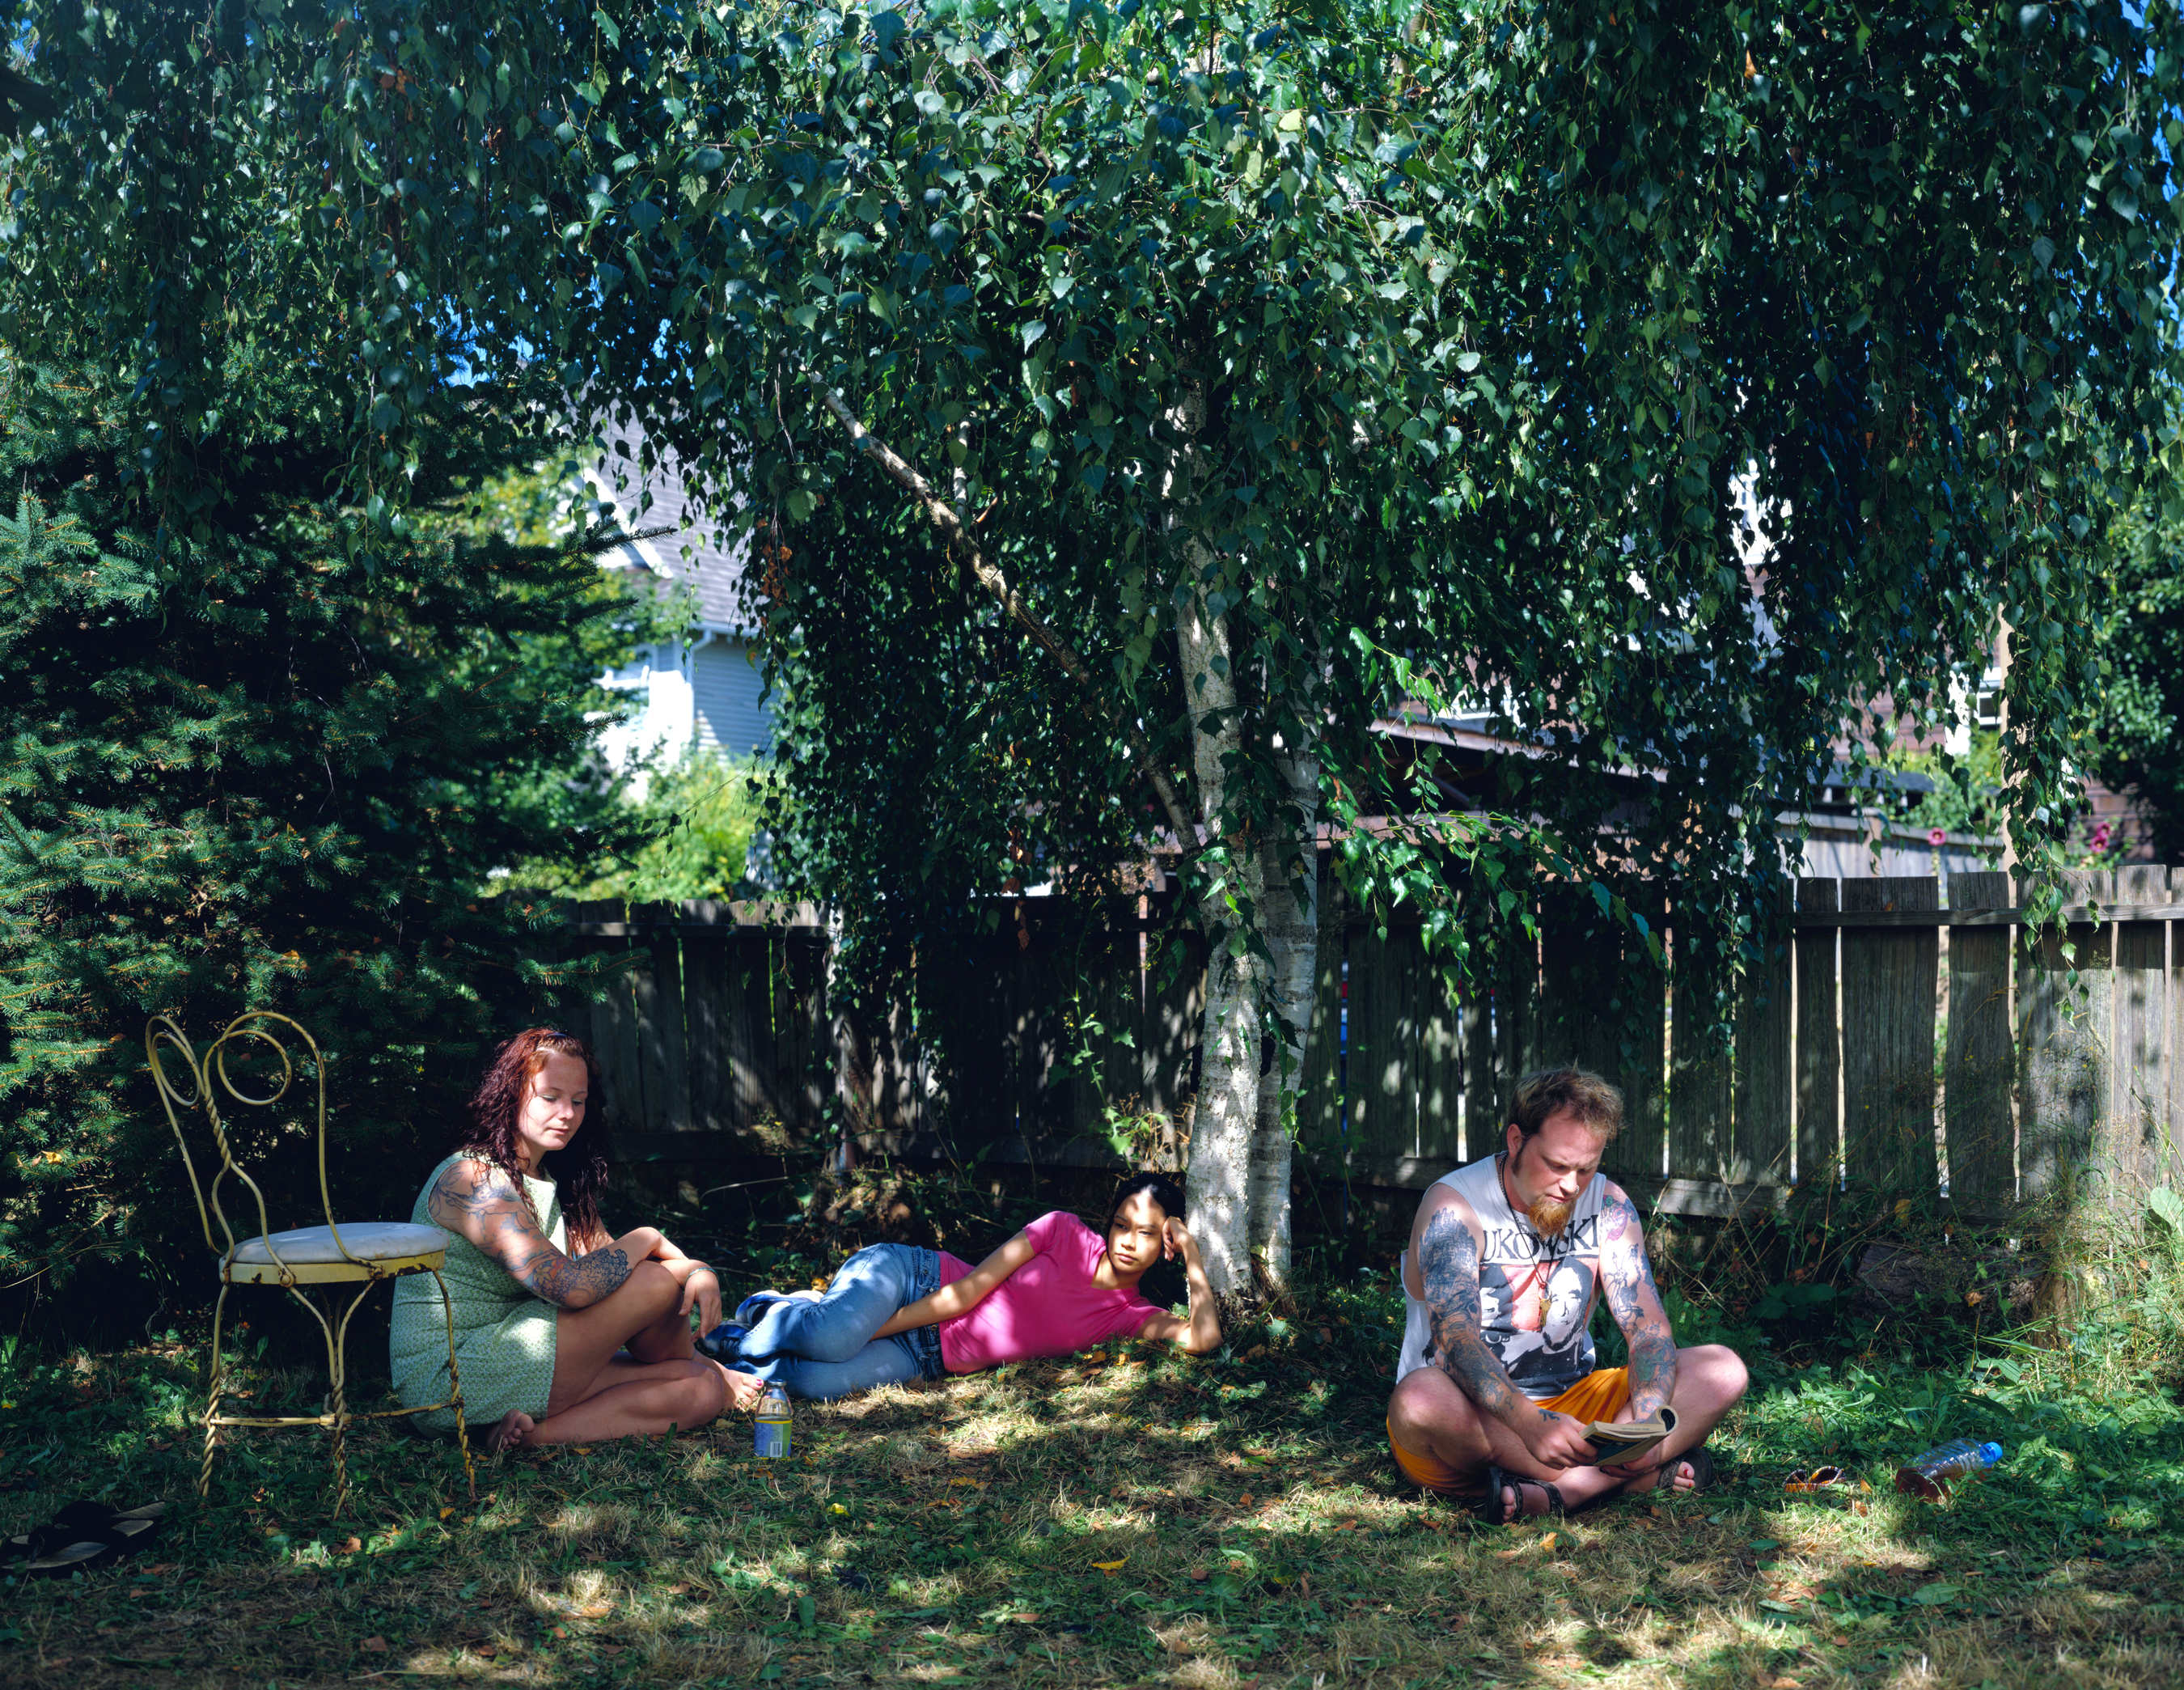 This colour photograph shows three people lounging under trees in a backyard. One woman is sitting on the ground near a chair, while another is lying in the grass. A man sitting apart from them is reading a book.